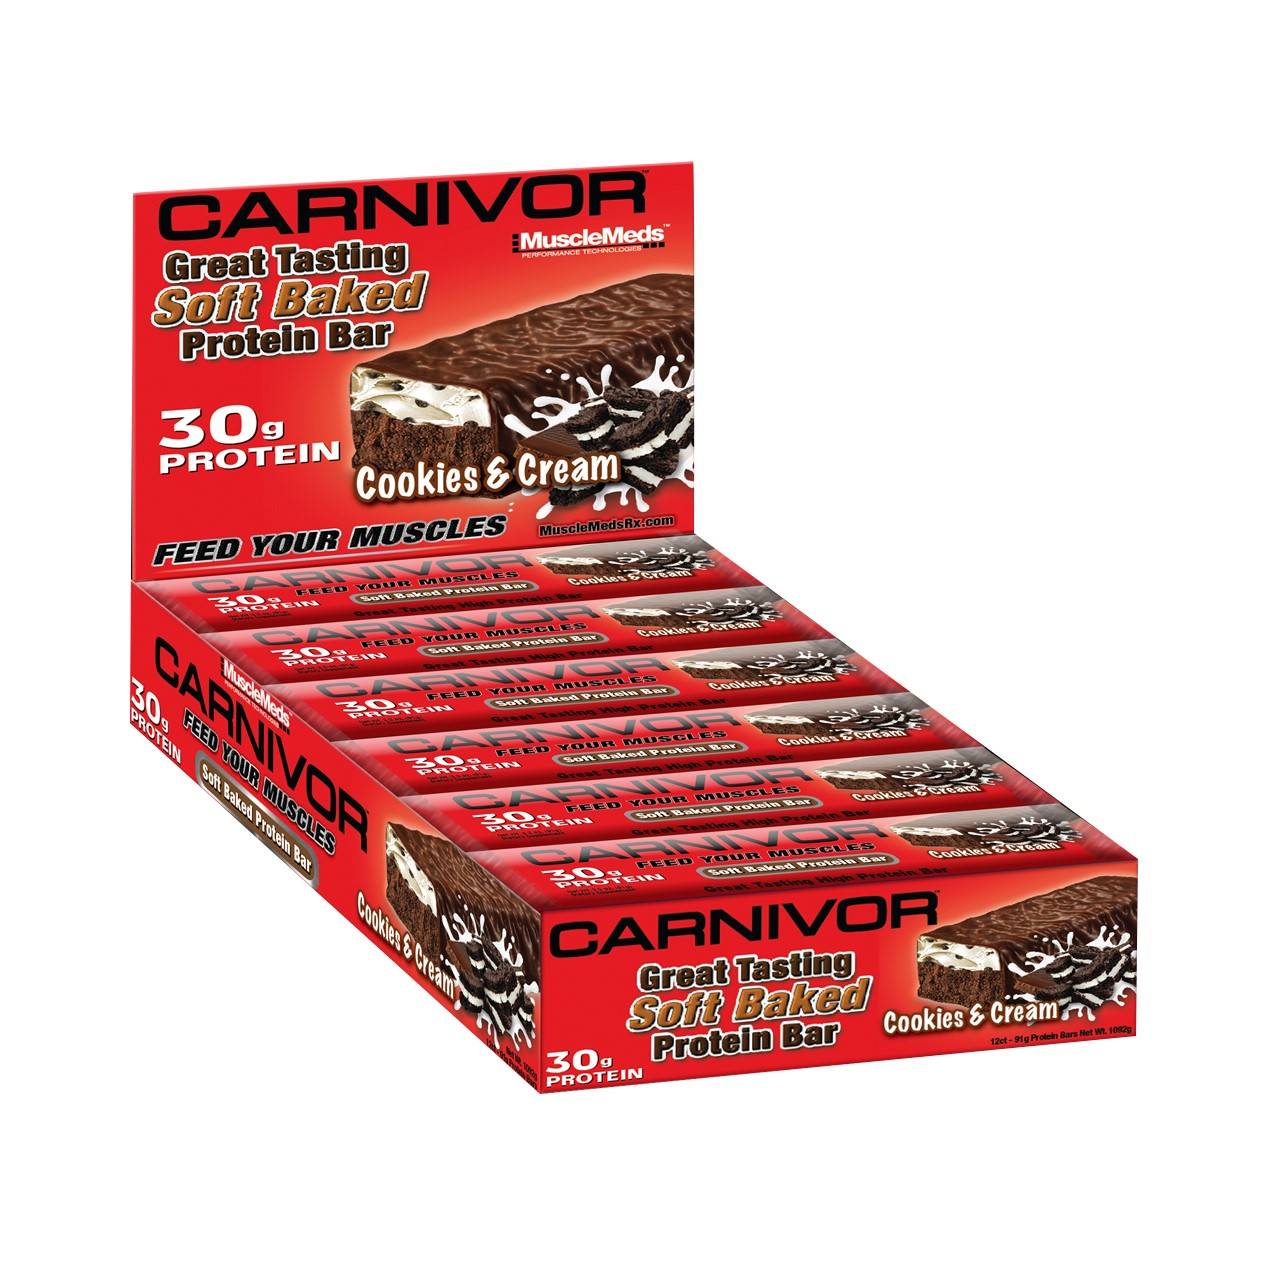 MuscleMeds Carnivor Soft Baked Protein Bar, Cookies and Cream, 3.2 Oz, 12 Ct